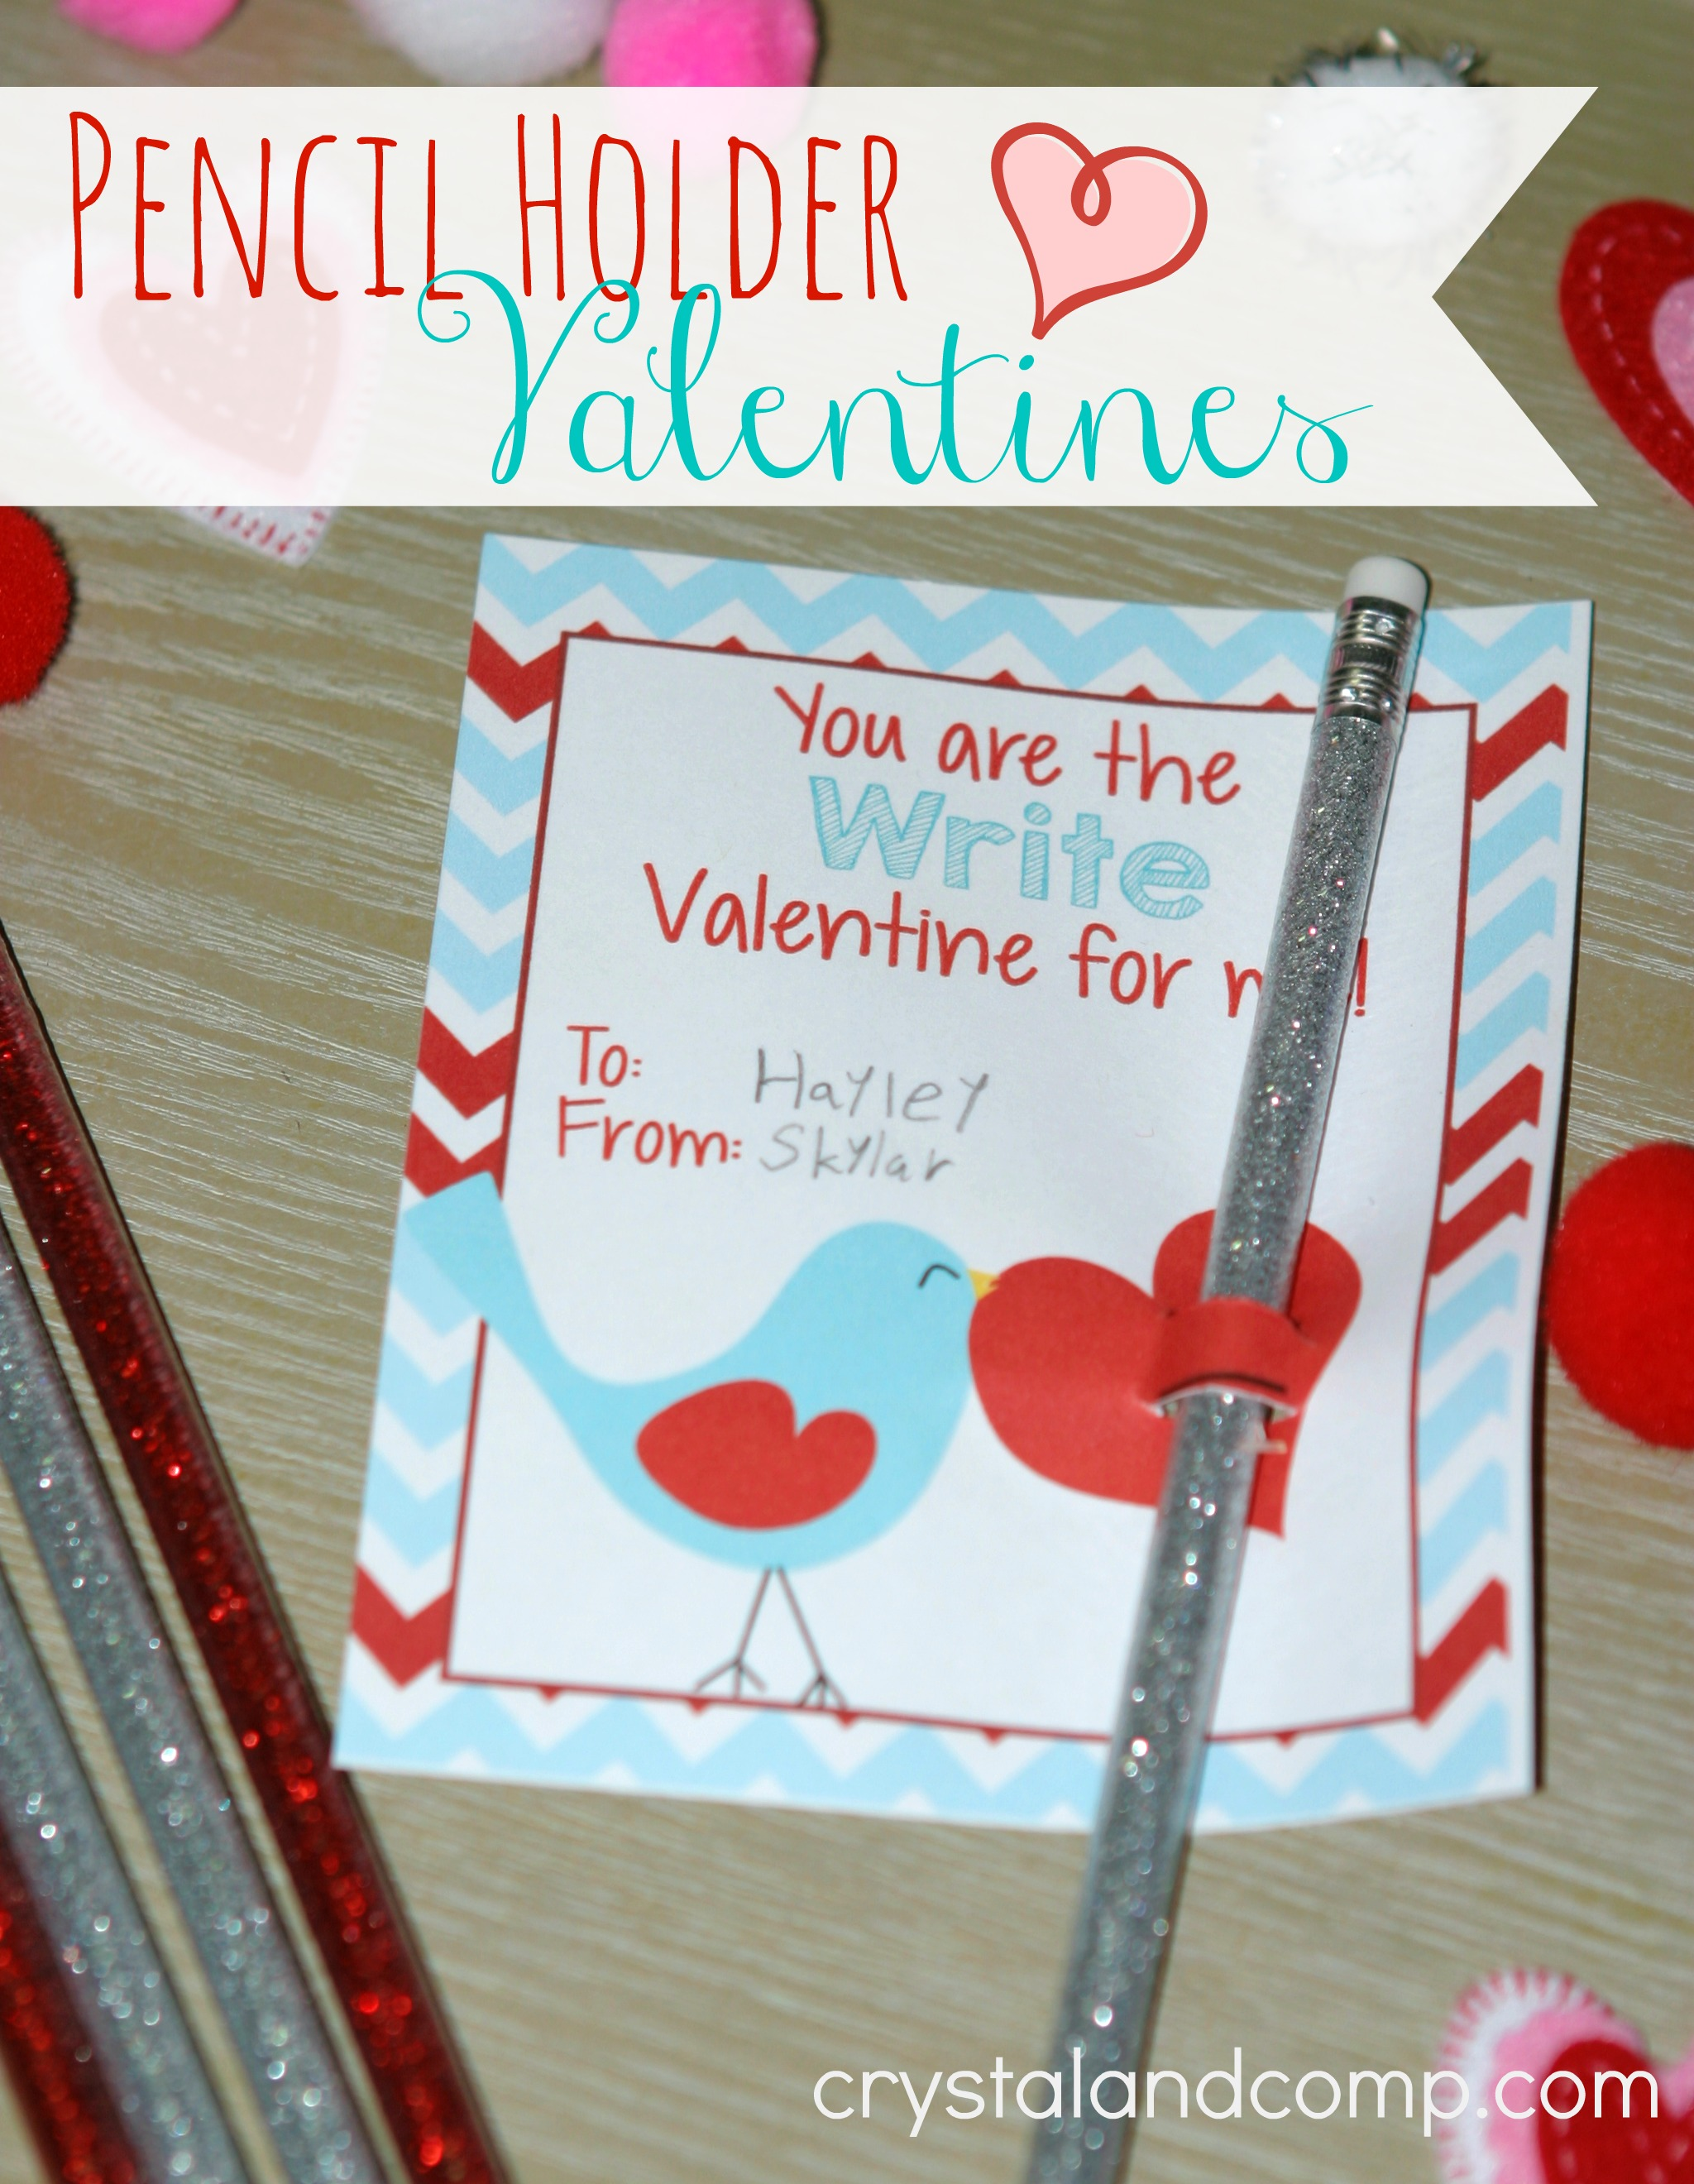 graphic about Printable Kid Valentine called Valentine Pencil Holder